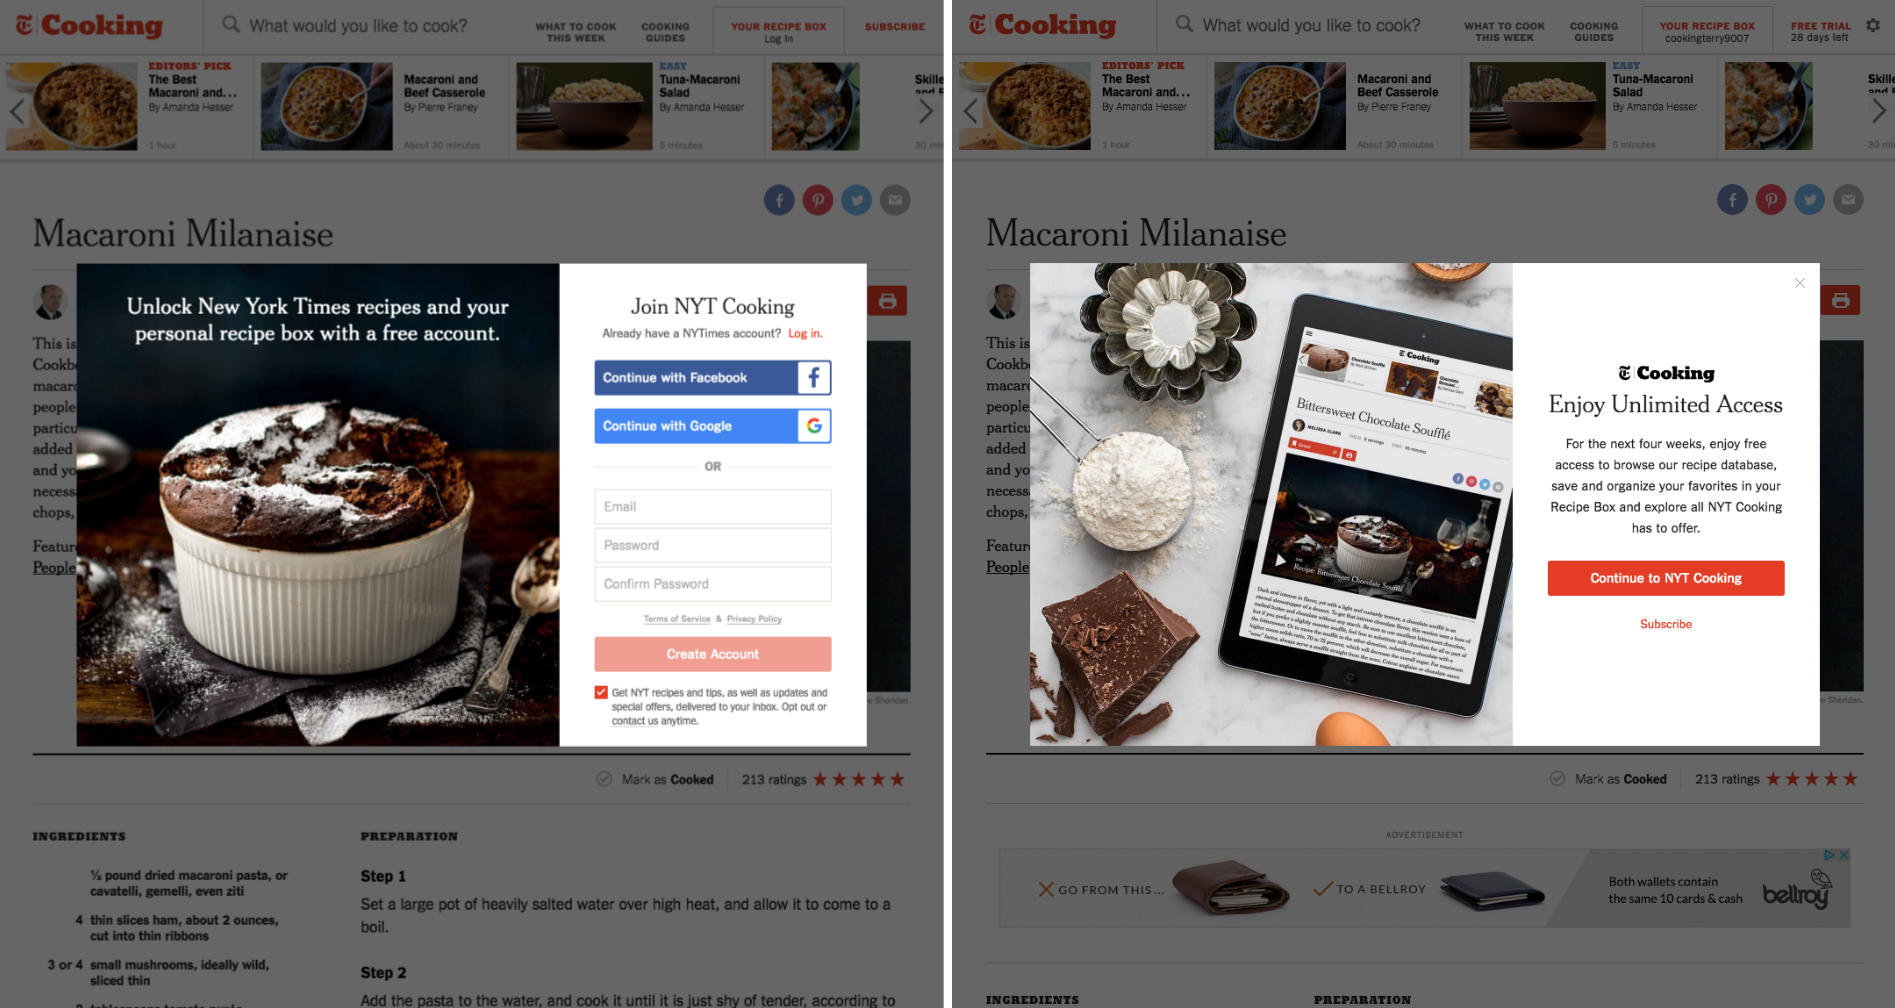 New users to NYT Cooking are asked to create an account to access the product, and are automatically enrolled in a 28-day free trial.